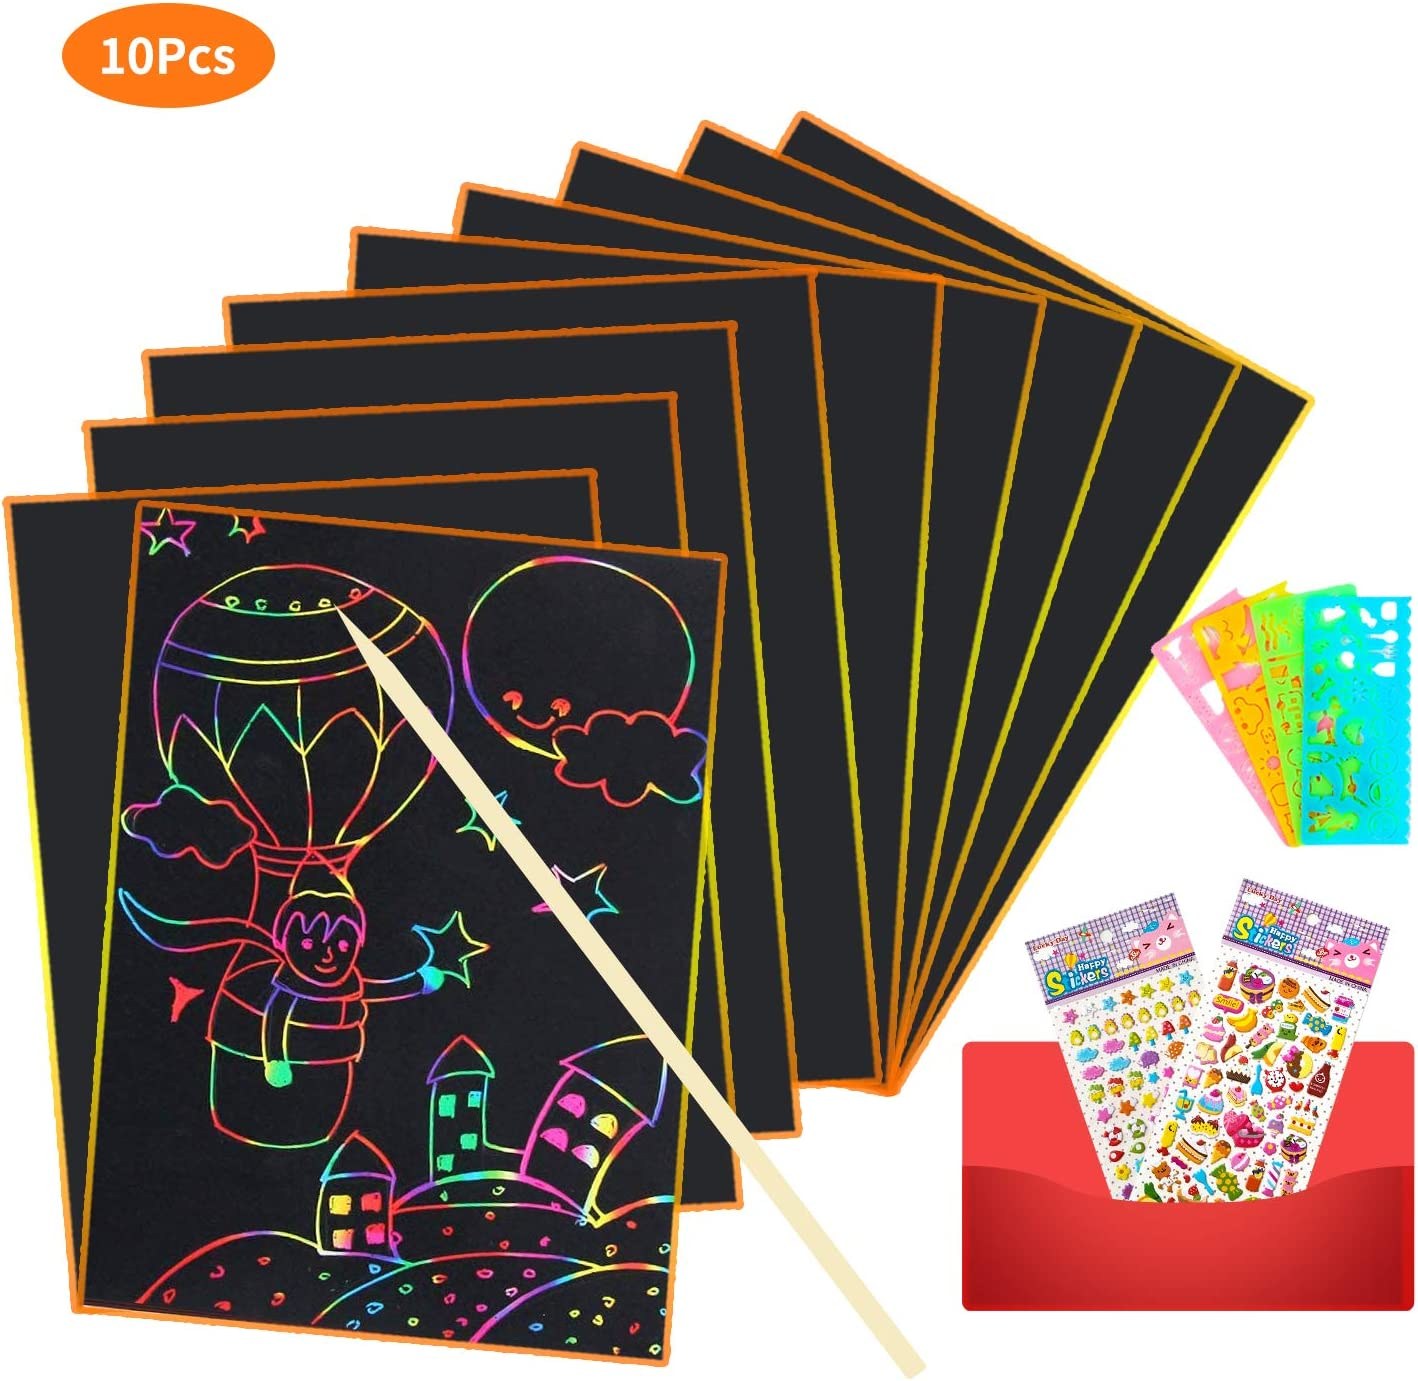 OtRainbow Scratch Art Set 10 Mini Pcs Rainbow Magic Scratch Paper for Kids Black Scratch Off Art Crafts Notes Boards Sheet with 1 Wooden Stylus for Festival Party Game Christmas Birthday Gift